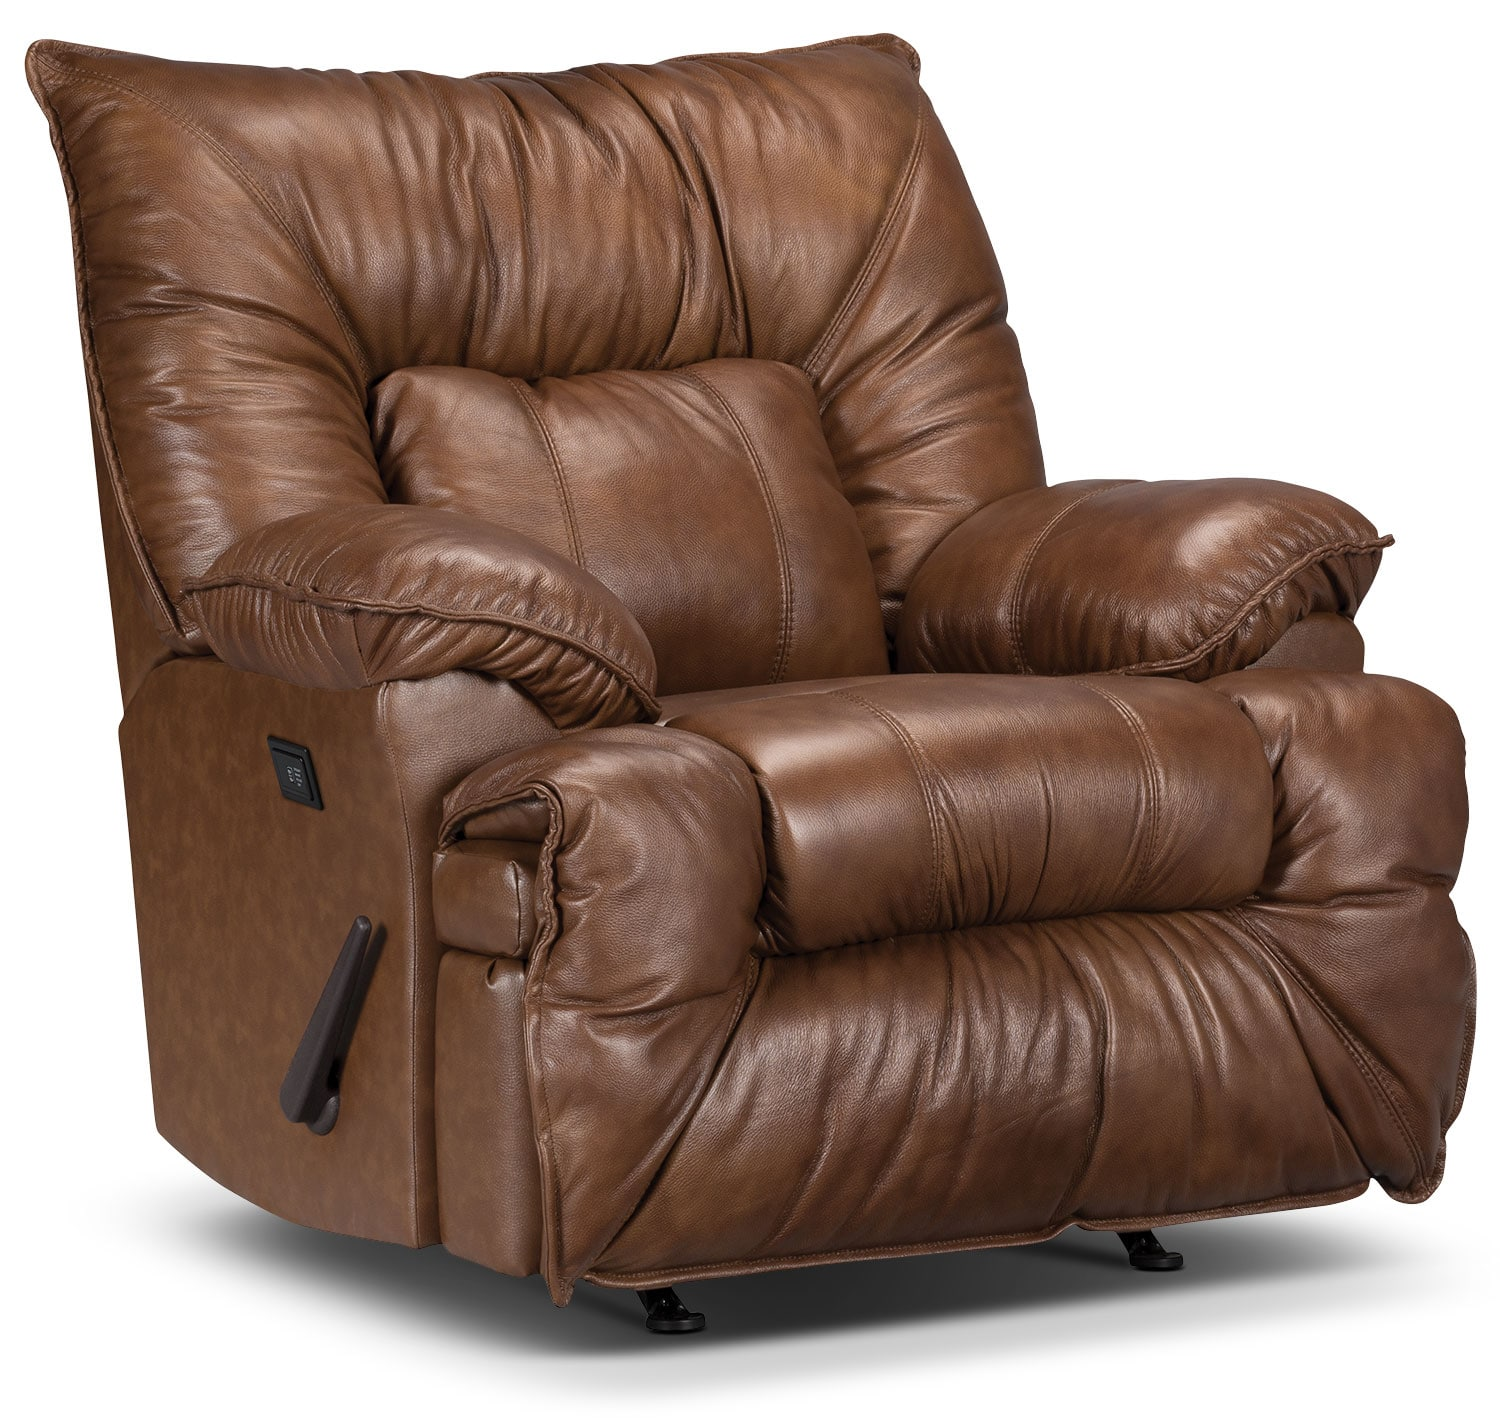 Designed2B Recliner 7726 Genuine Leather Massage Chair - Saddle